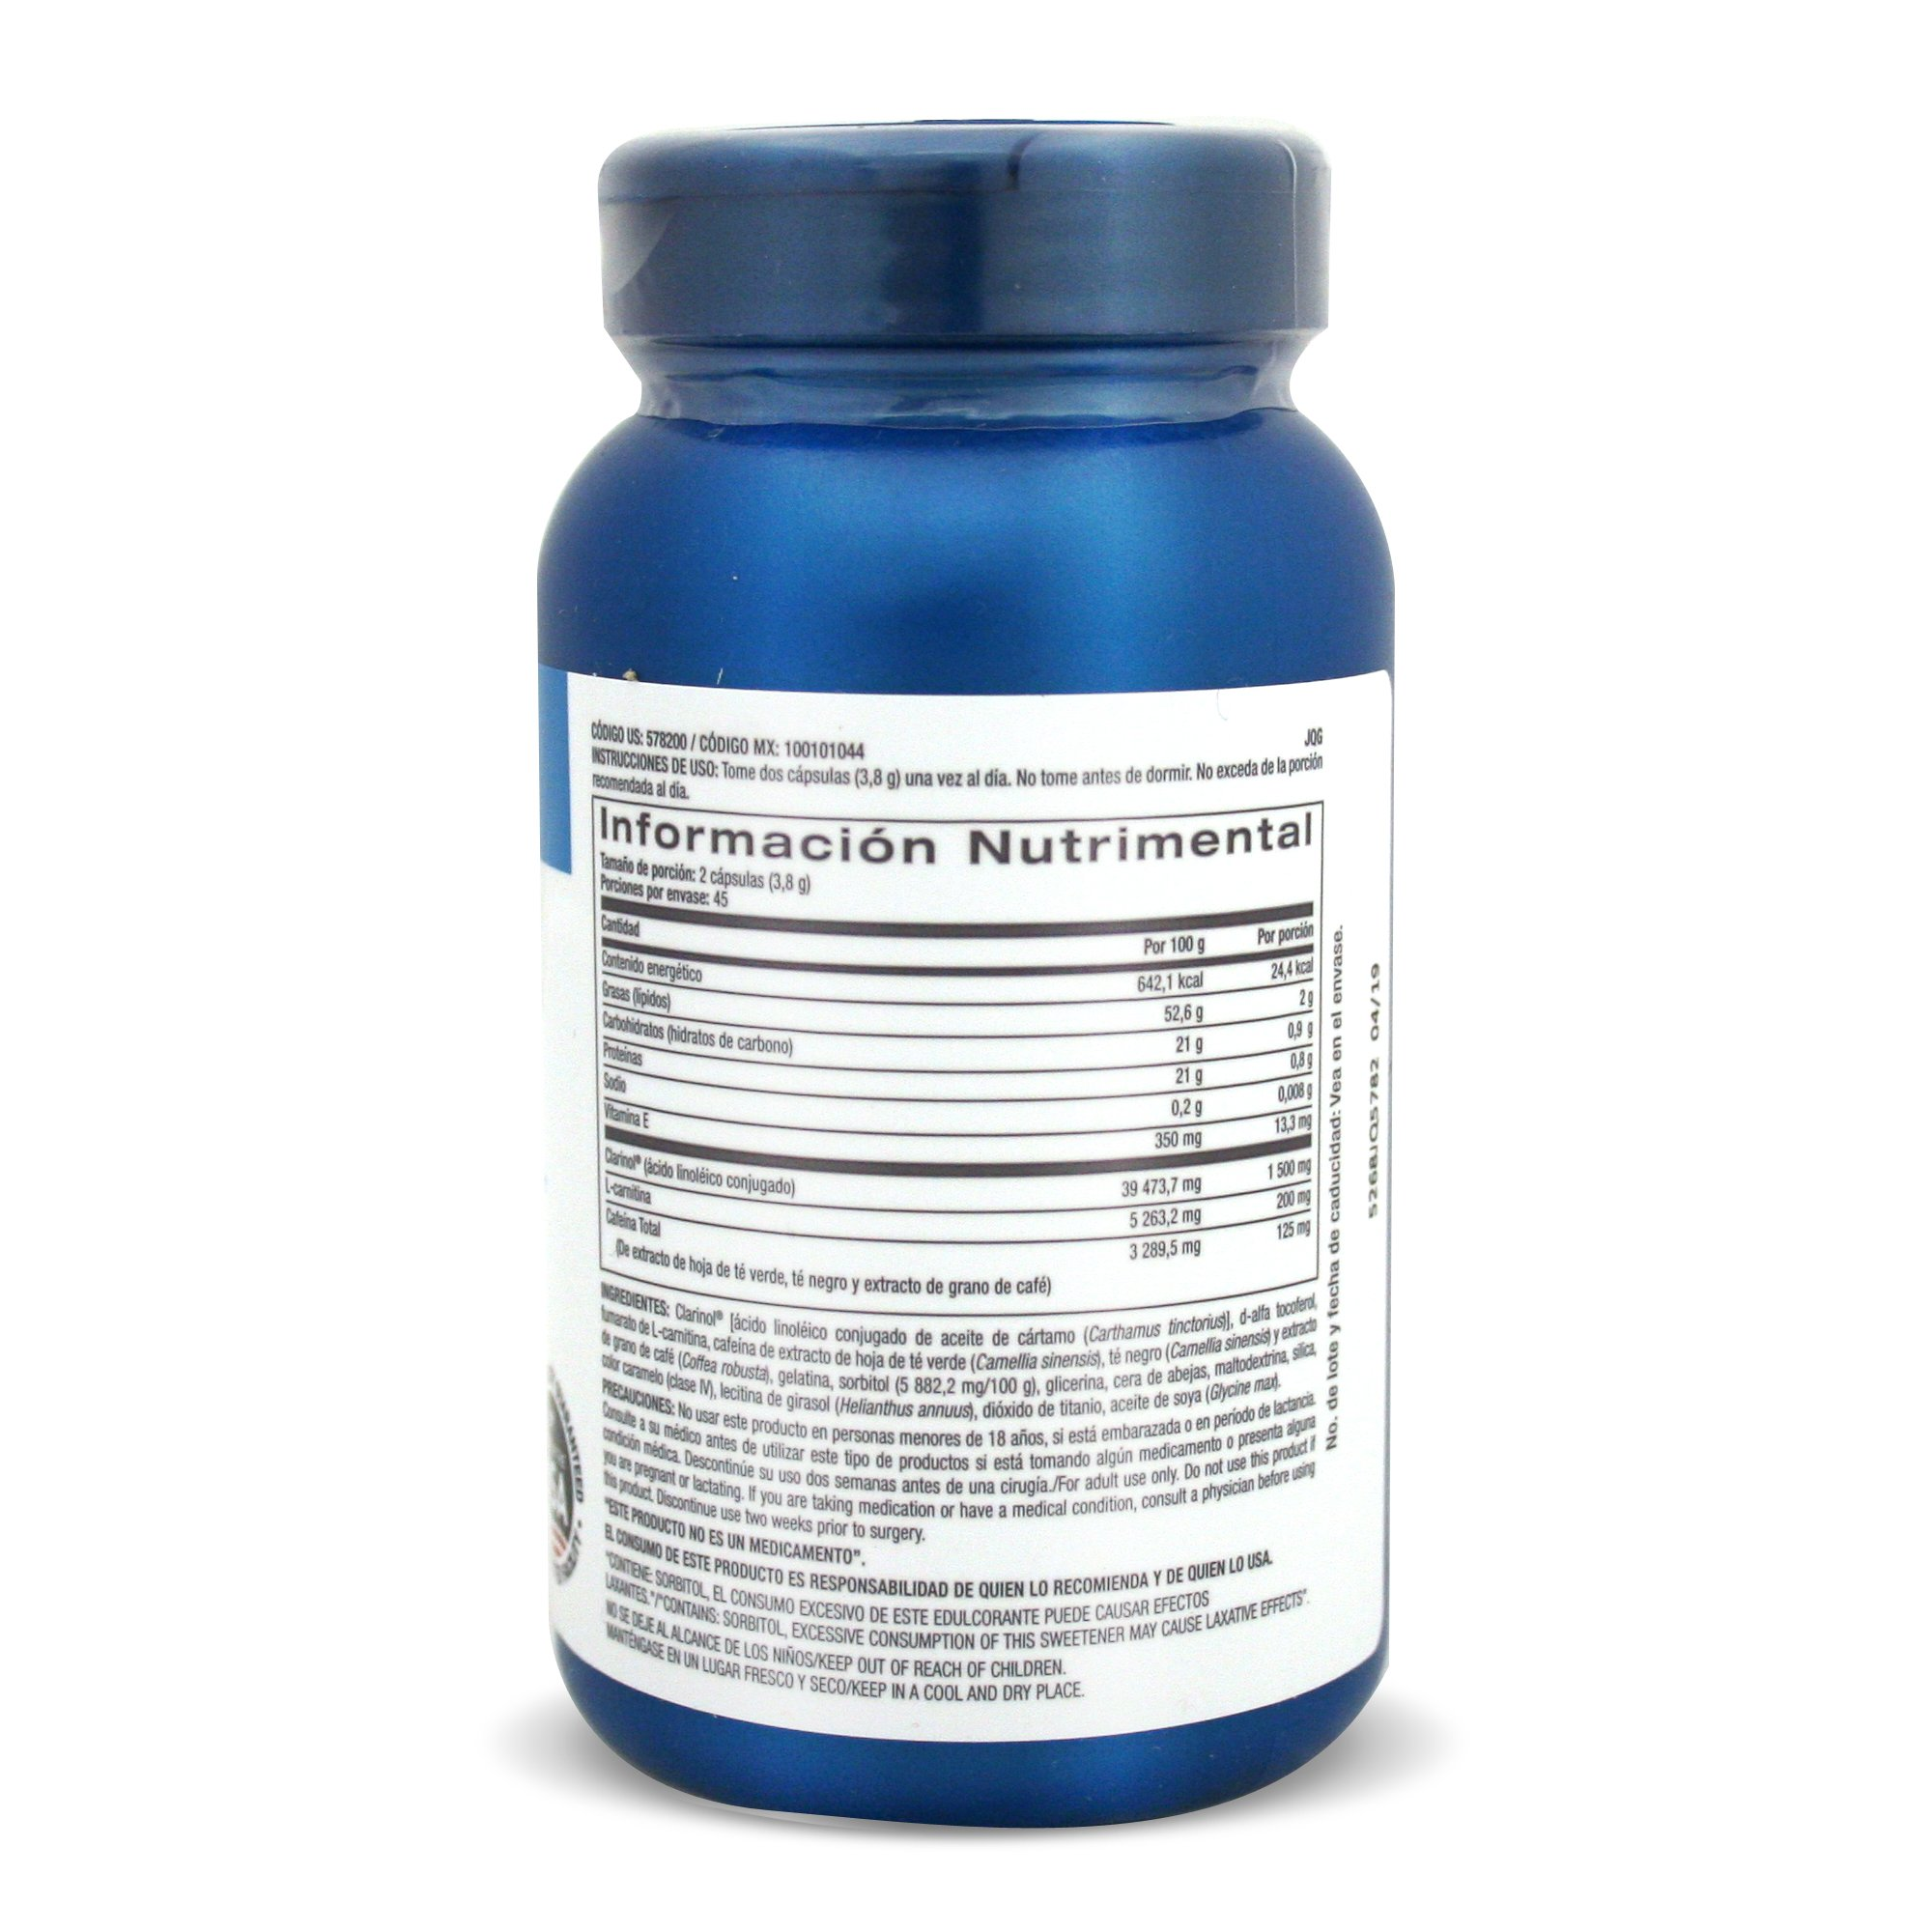 GNC Total Lean Thermo CLA for Healthy Body Composition and Lean Muscle Maintenance - 90 Count by GNC (Image #4)